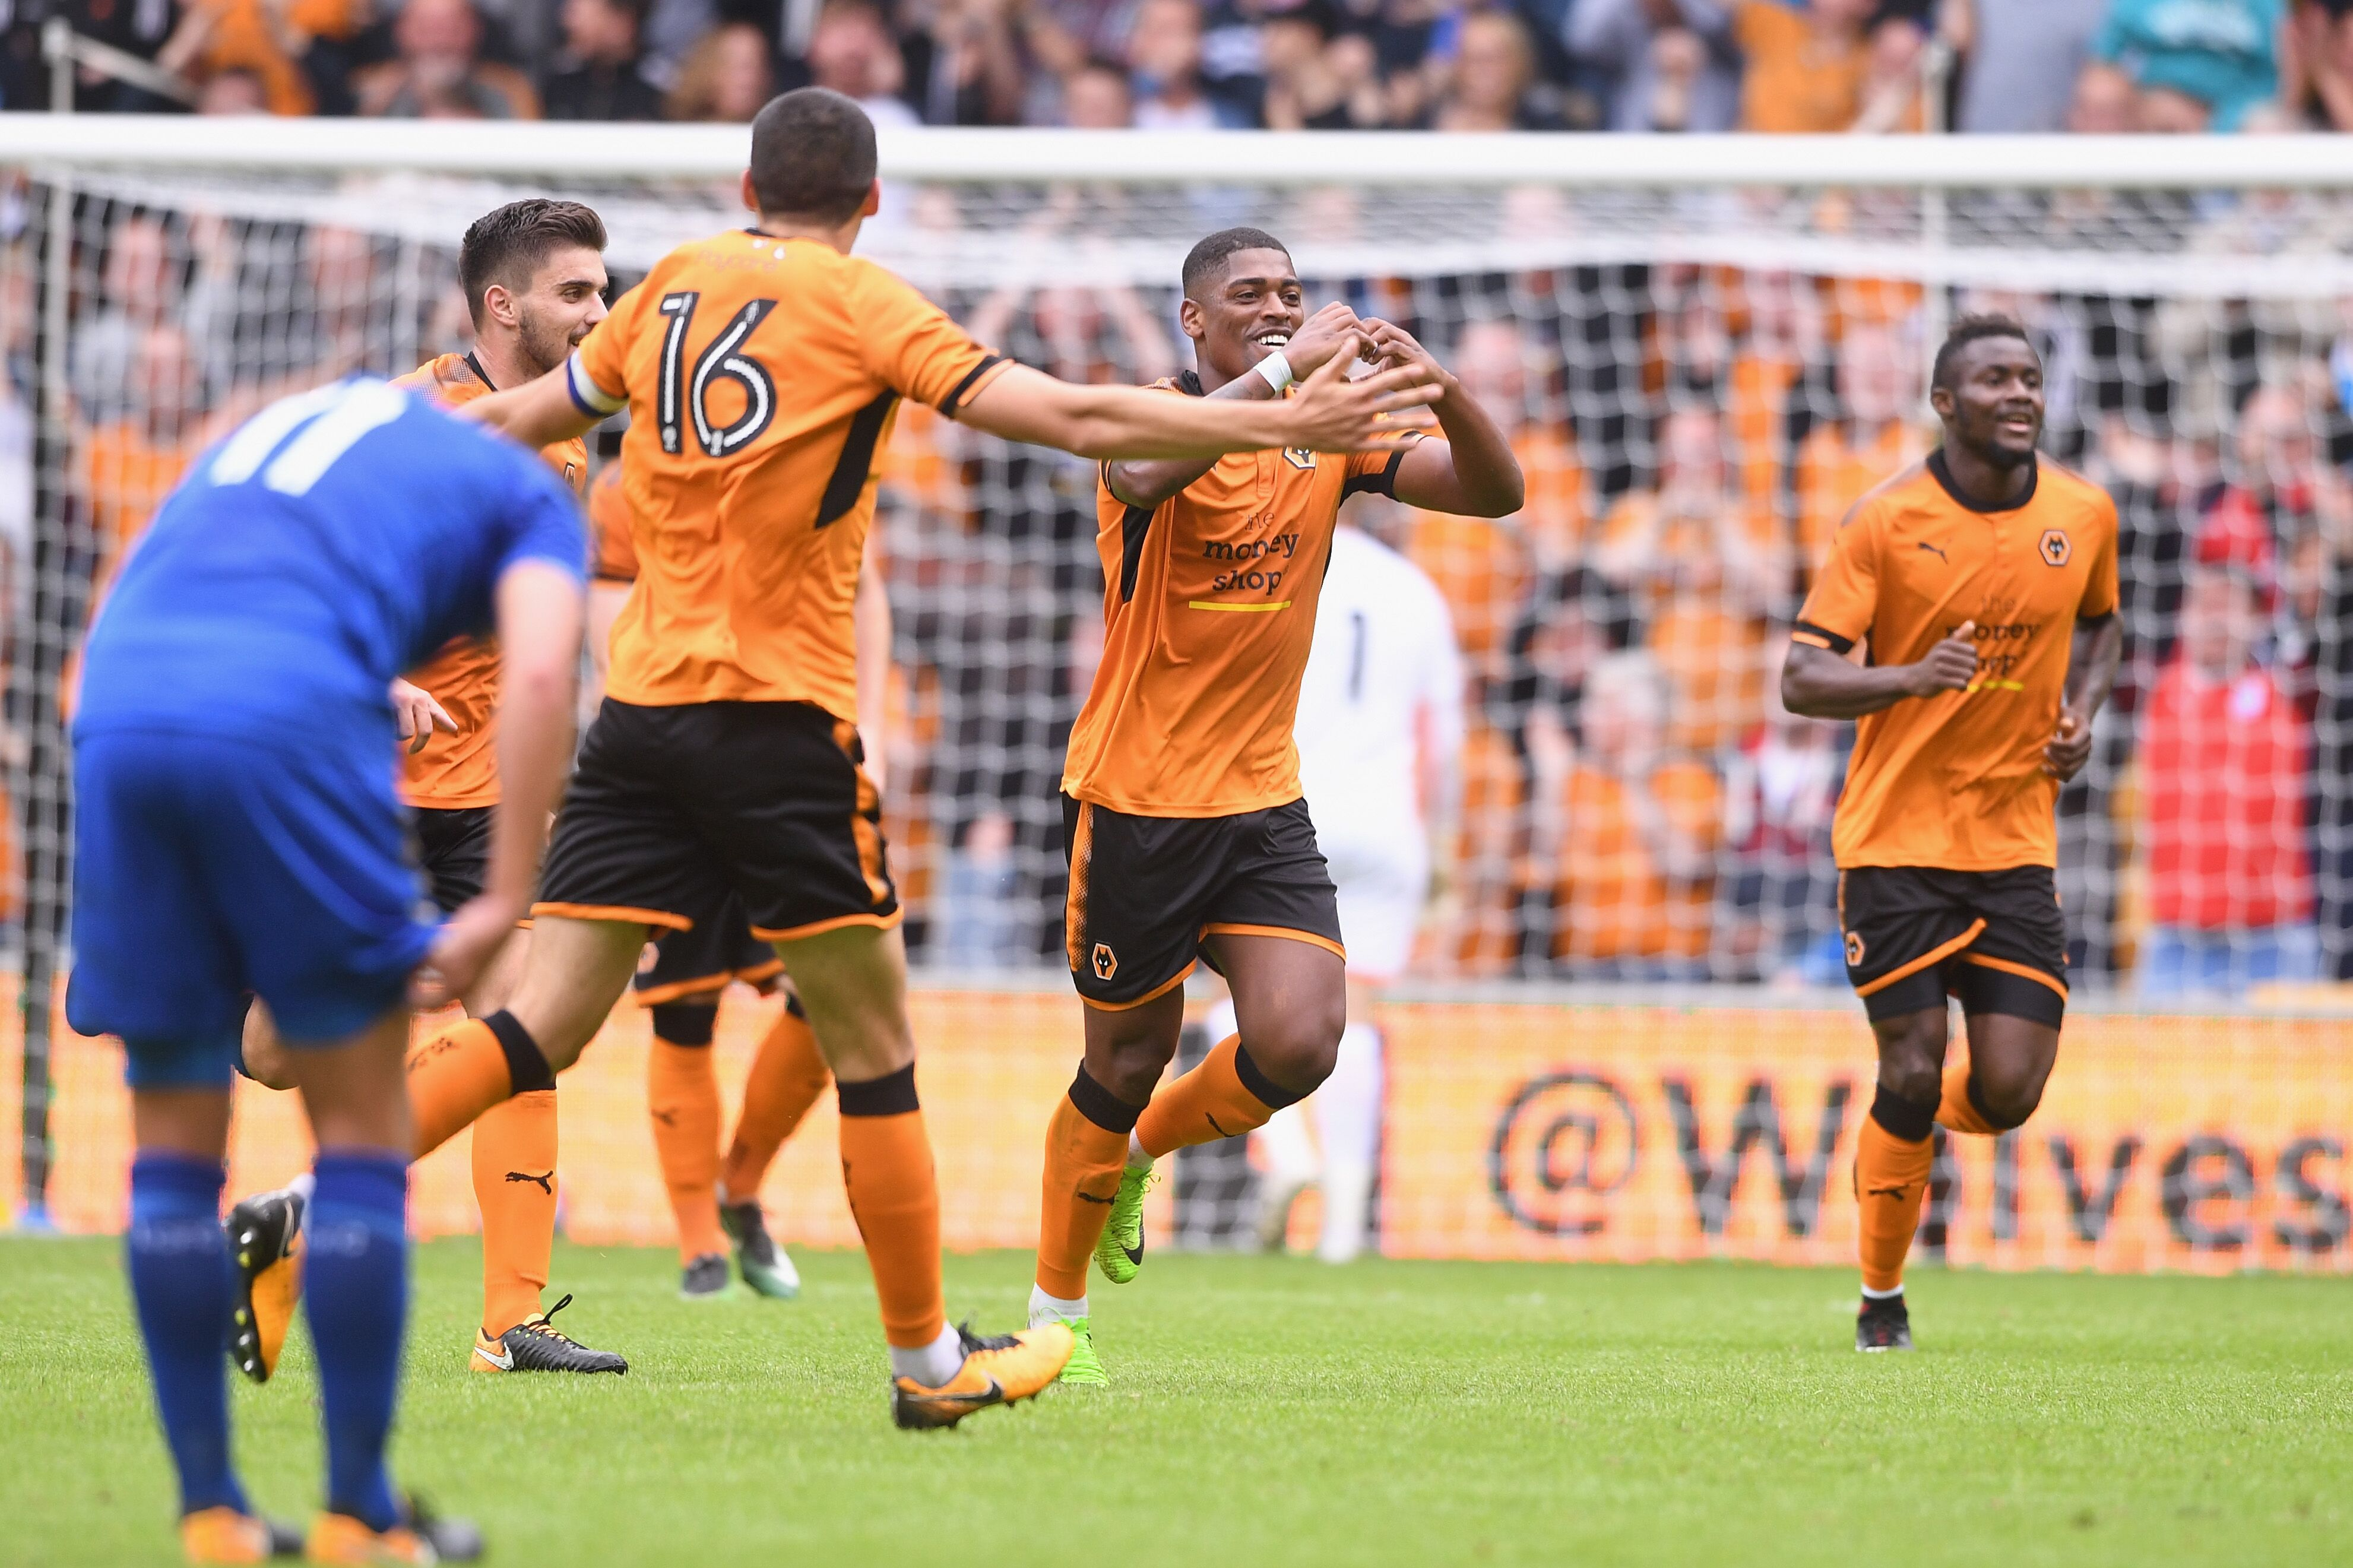 wolves vs leicester city - photo #48